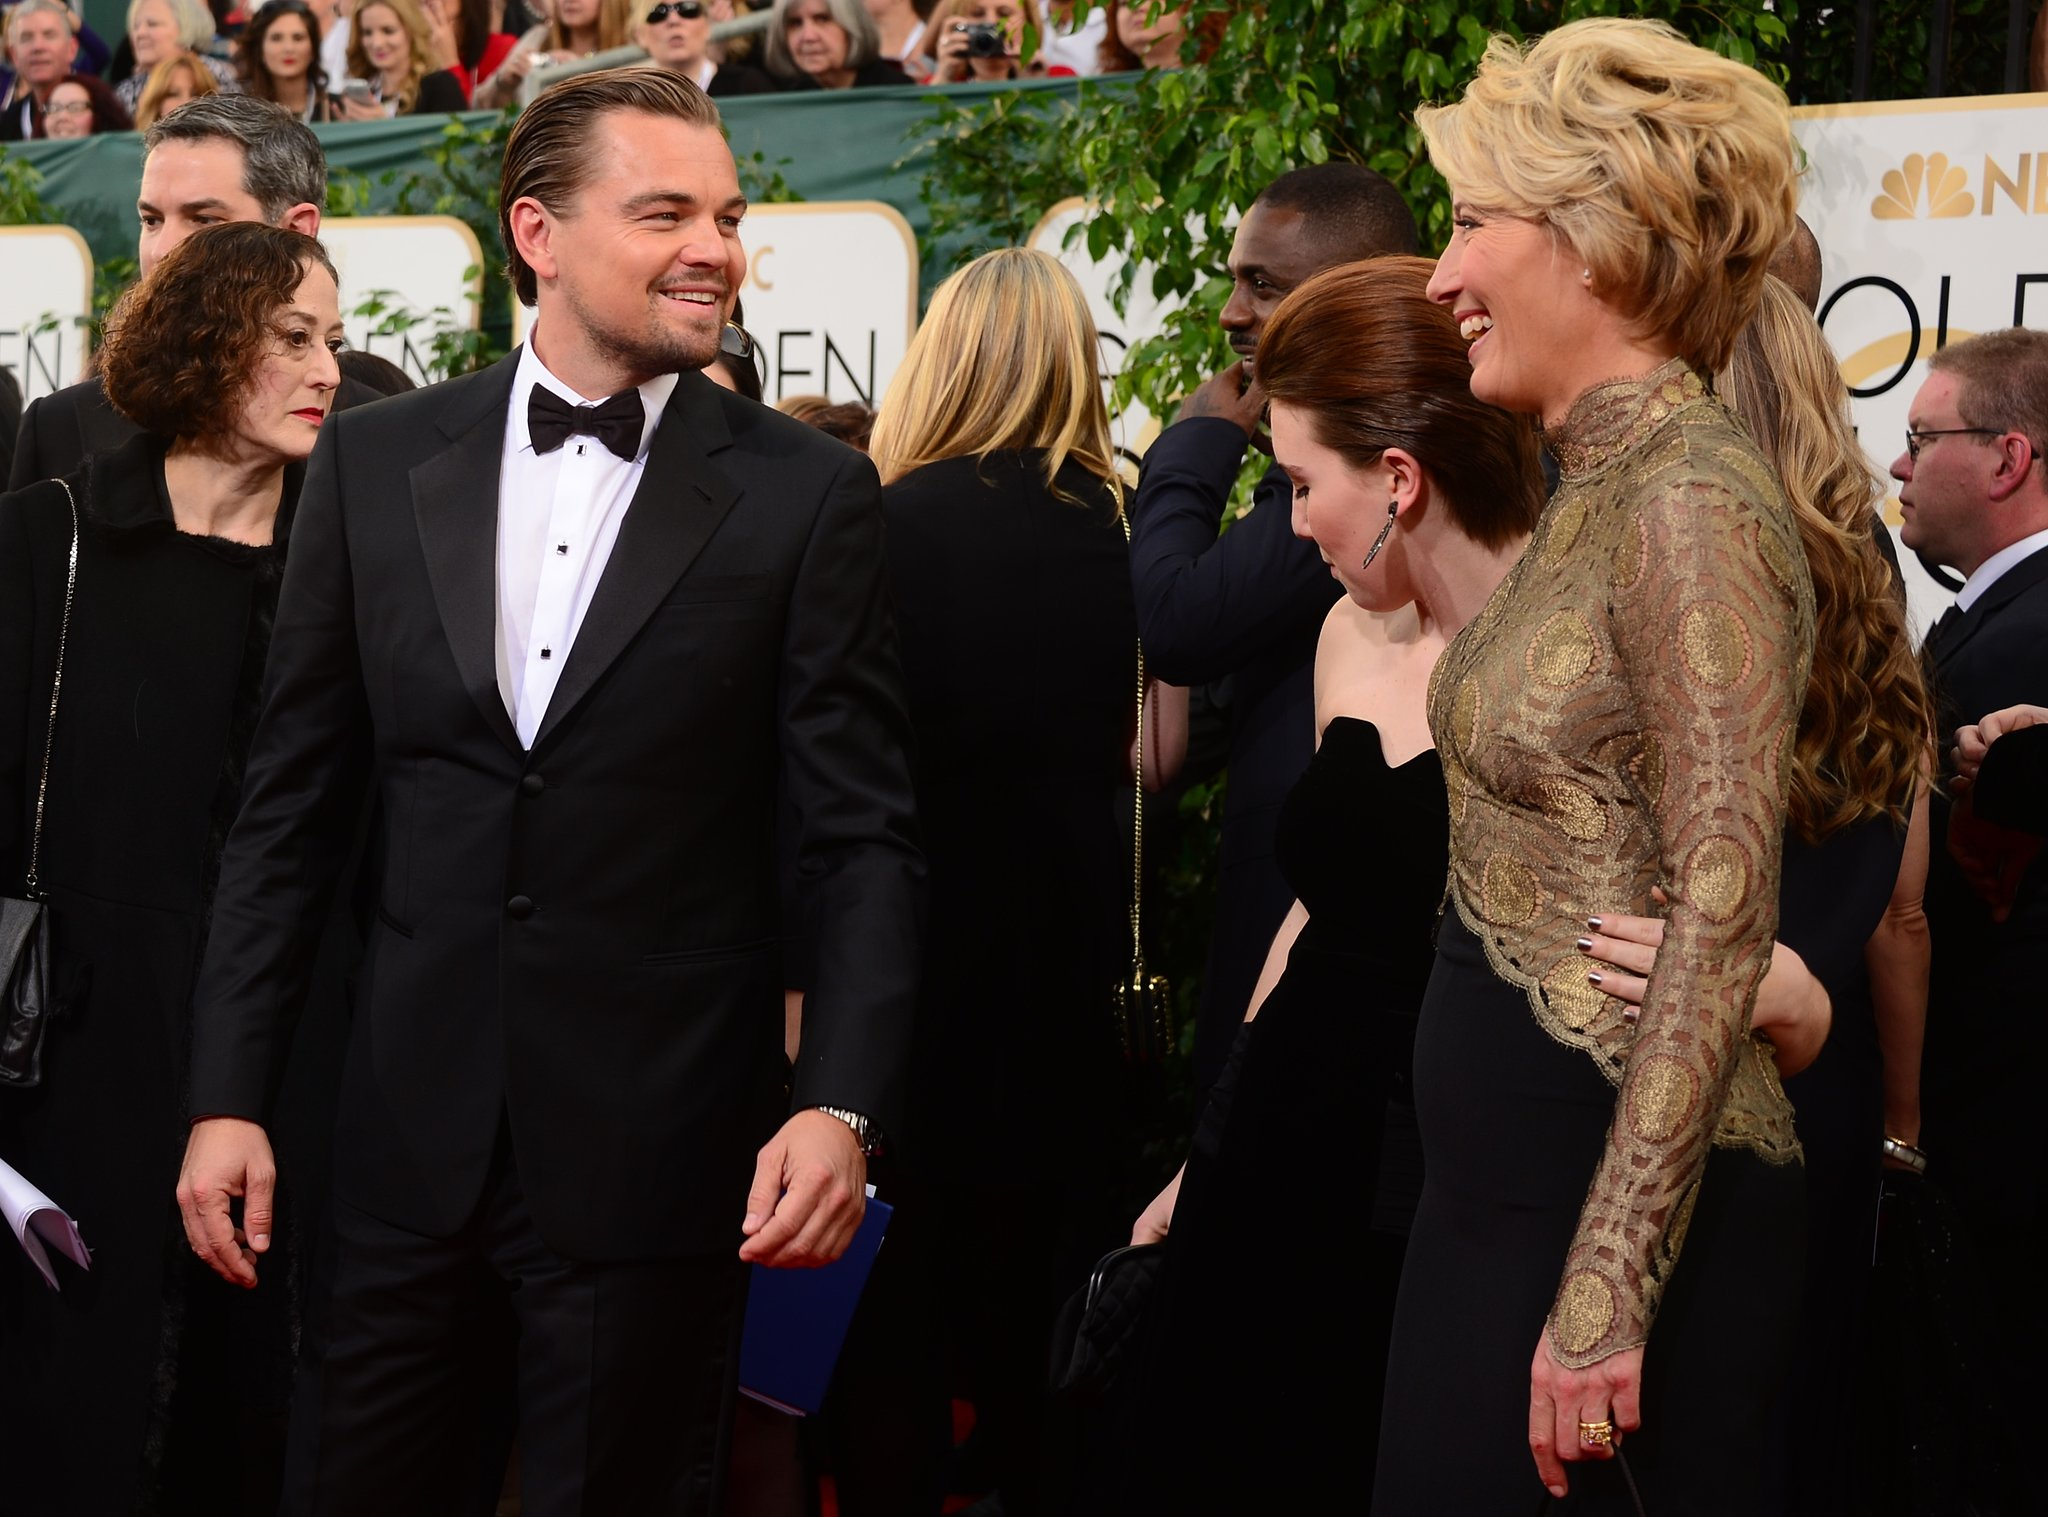 Leo said hi to Emma Thompson and her daughter on the carpet.